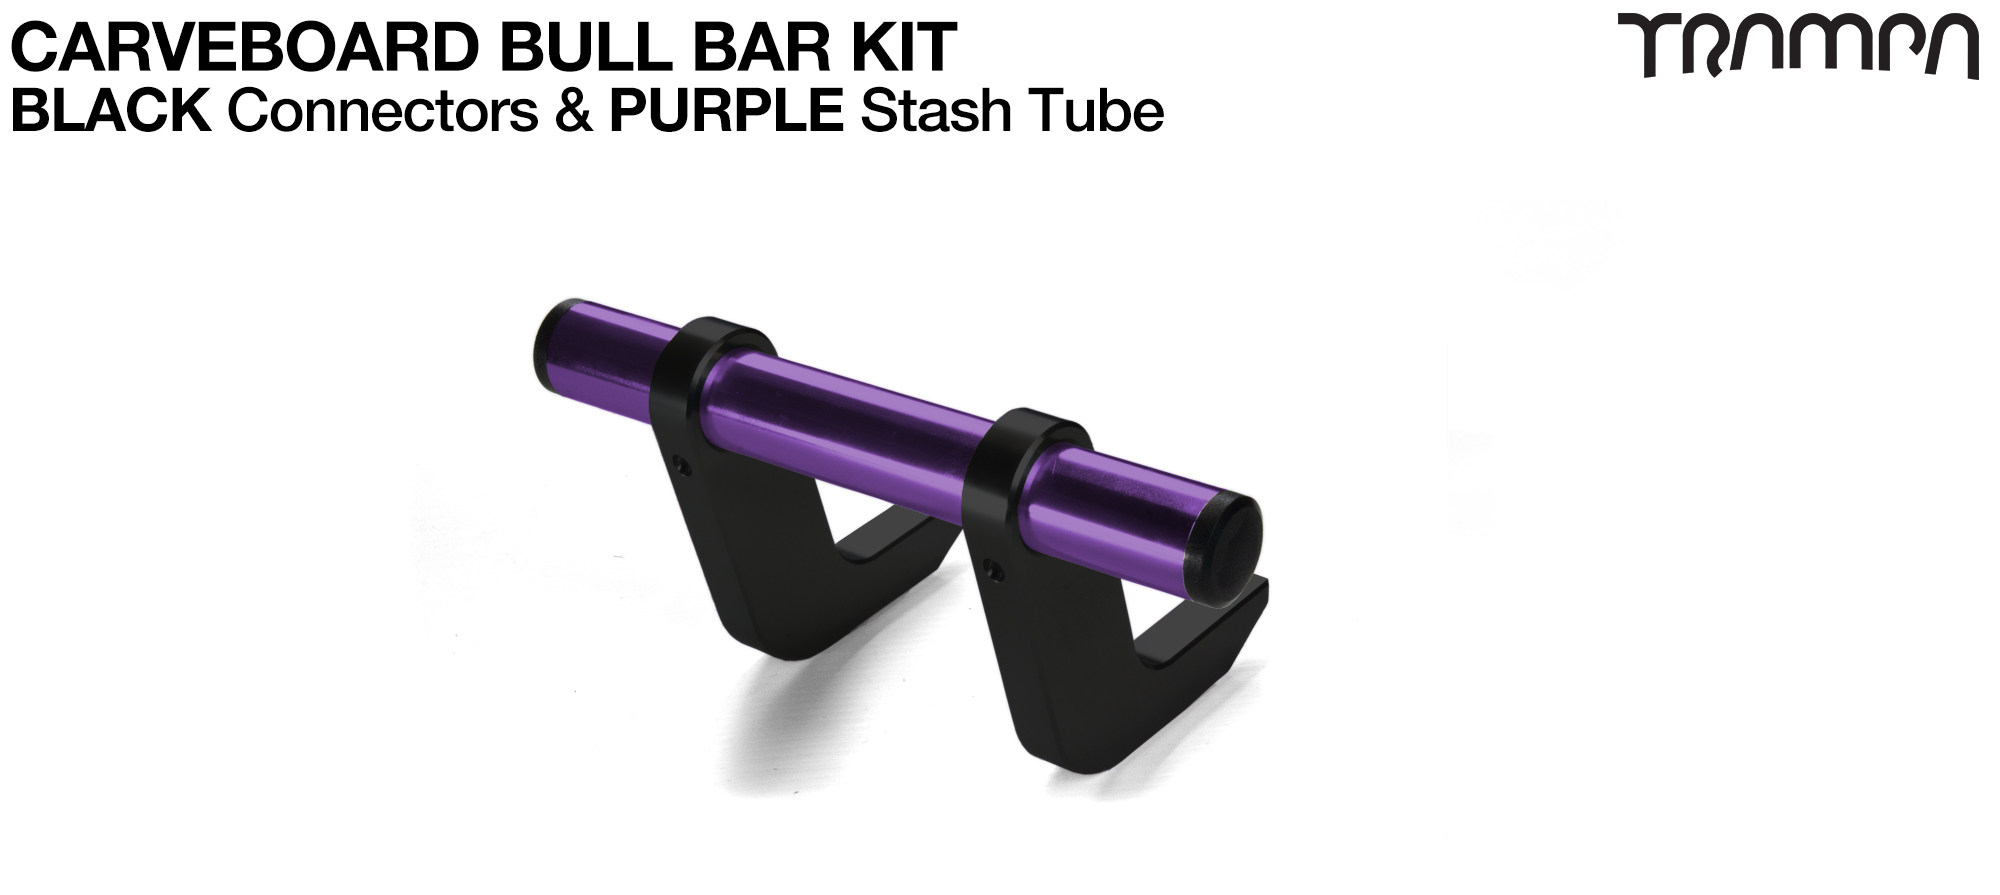 BLACK Uprights & PURPLE Crossbar BULL BARS for CARVE BOARDS using T6 Heat Treated CNC'd AluminIum Clamps, Hollow Aluminium Stash Tubes with Rubber end bungs